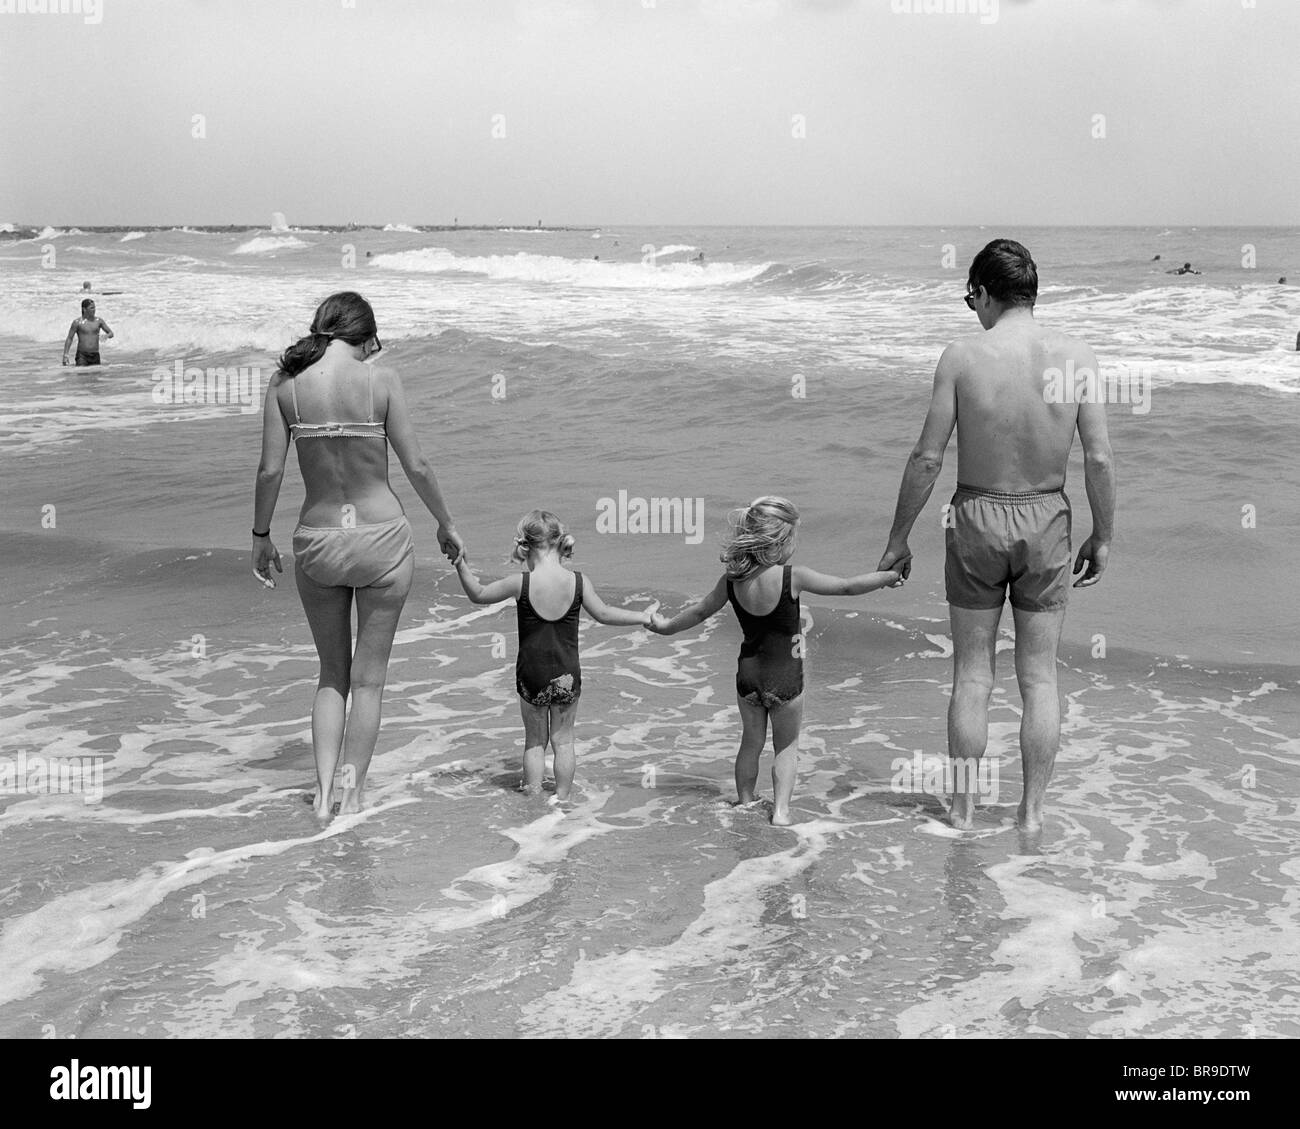 1970s FAMILY ON VACATION AT OCEAN BEACH HOLDING HANDS WALKING ON SAND IN SURF - Stock Image